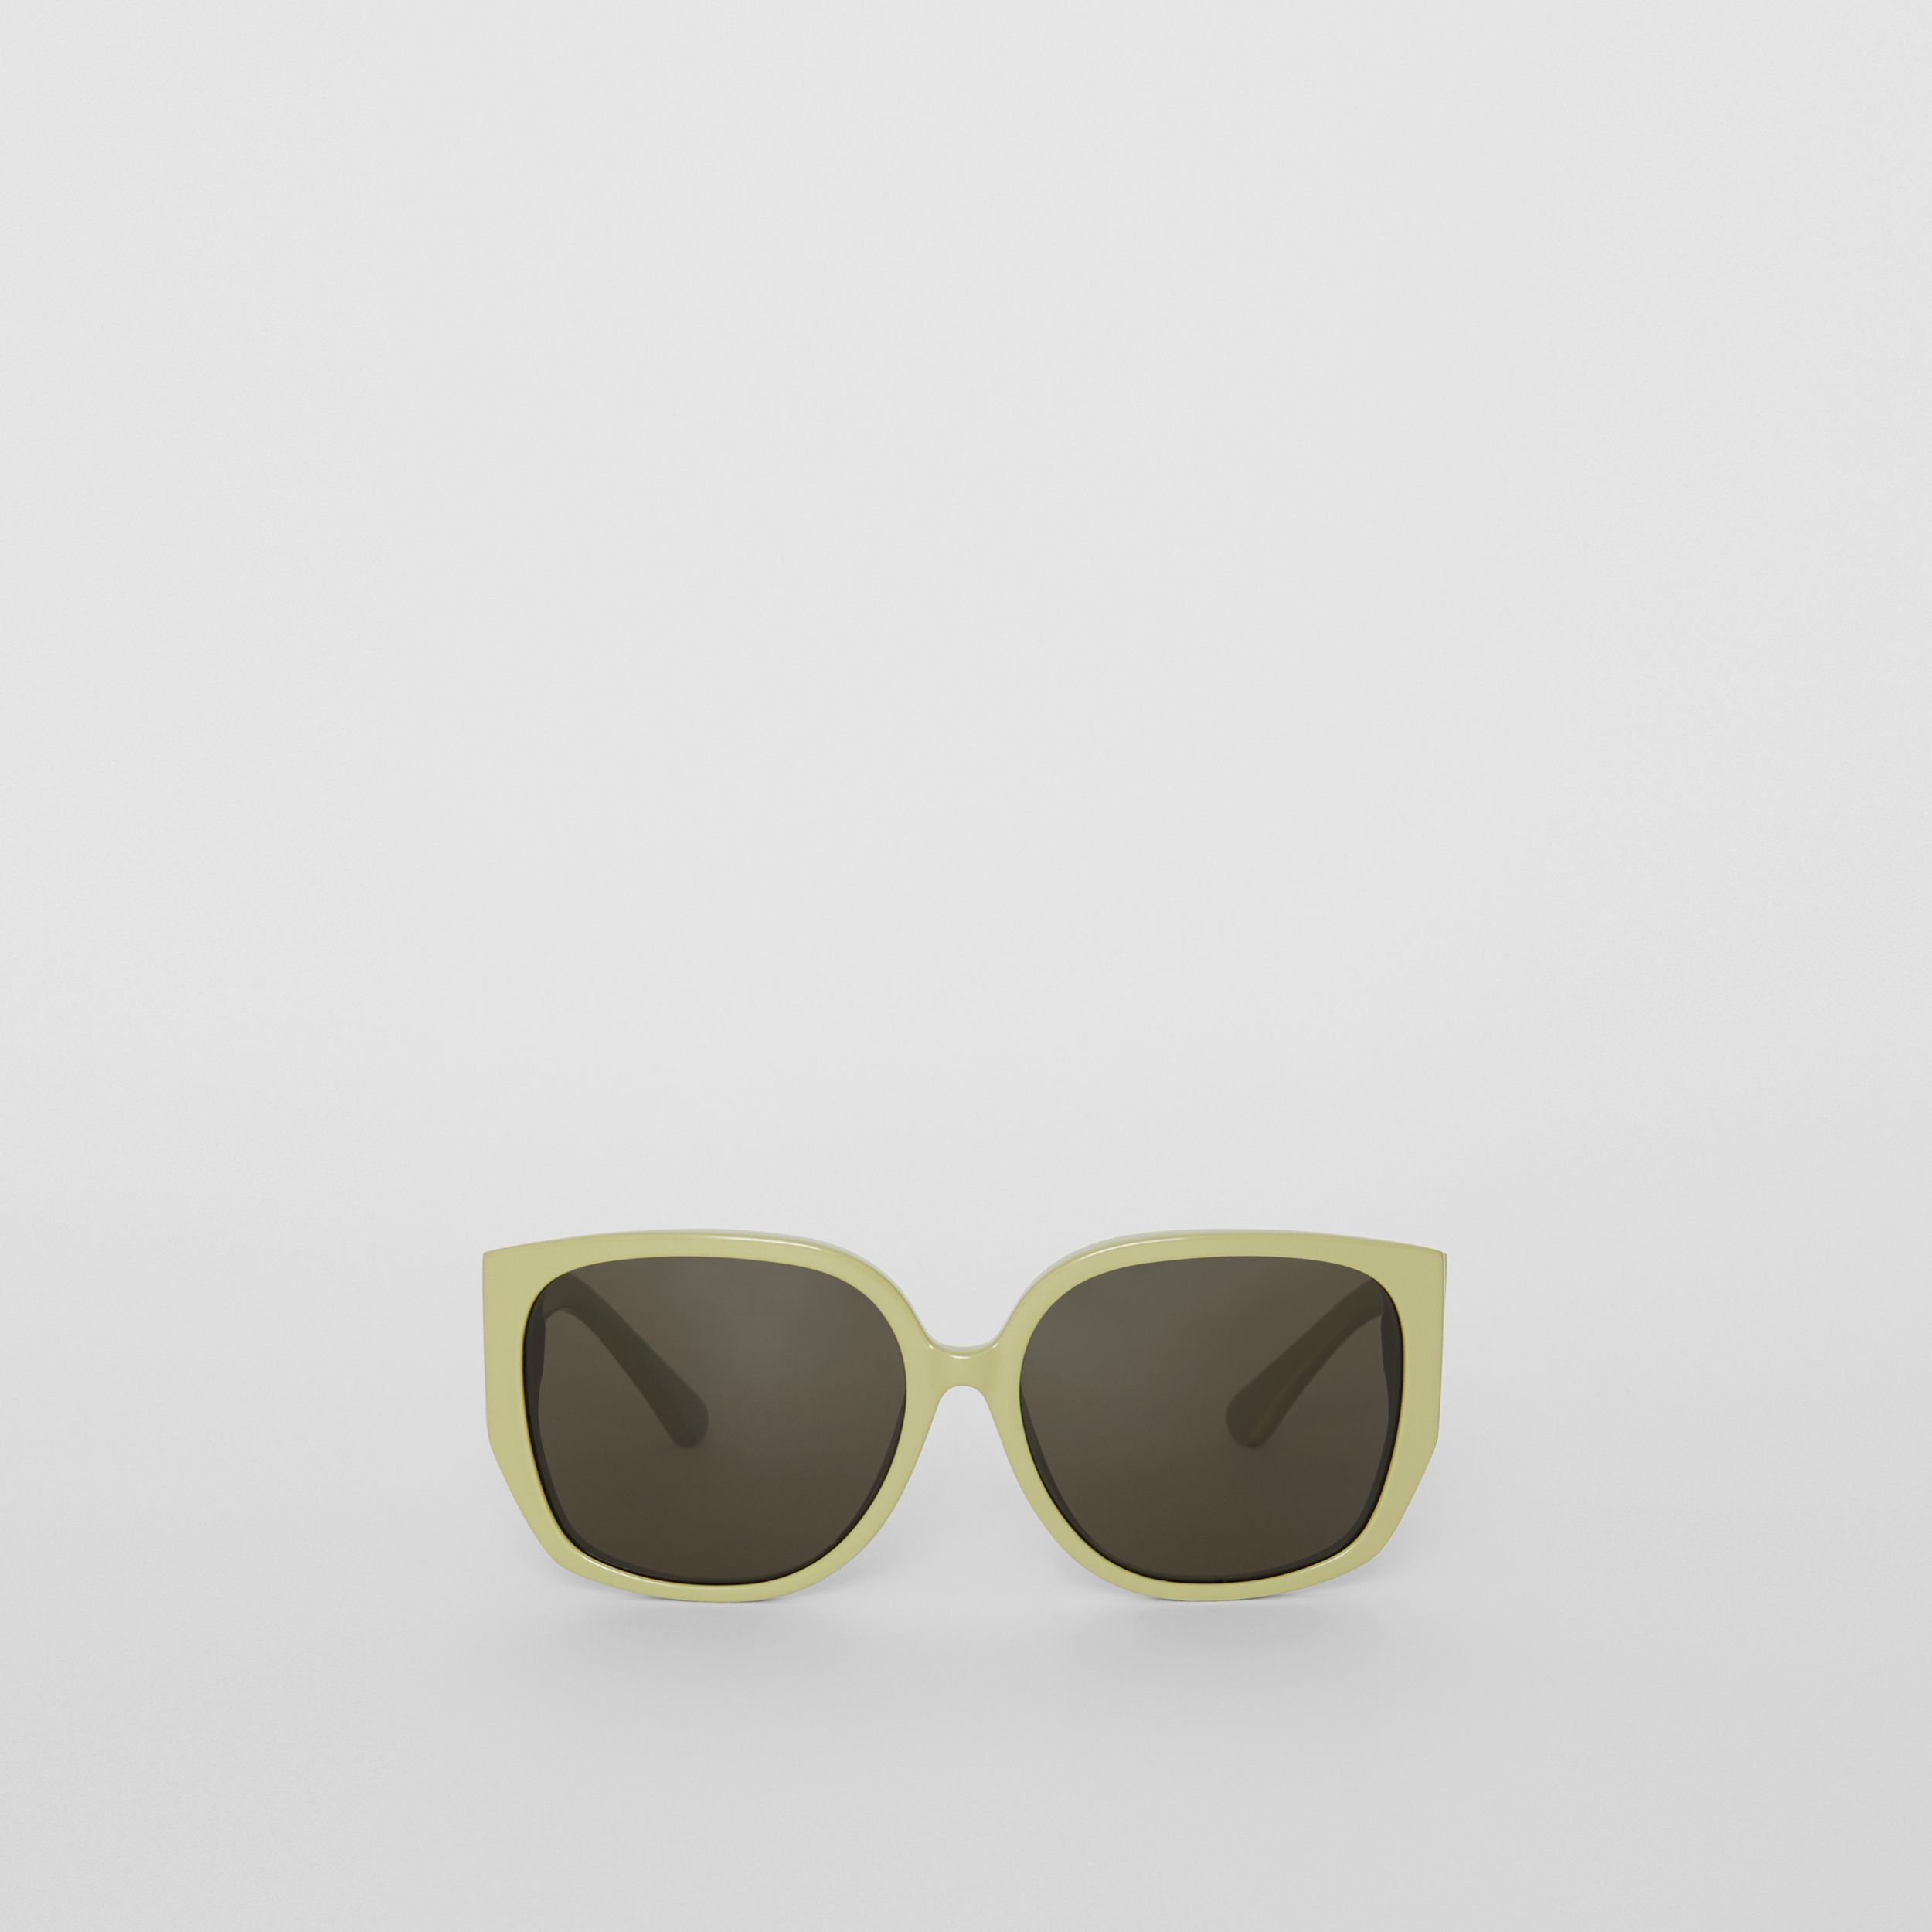 Oversized Butterfly Frame Sunglasses in Pistachio - Women | Burberry Hong Kong S.A.R. - 1